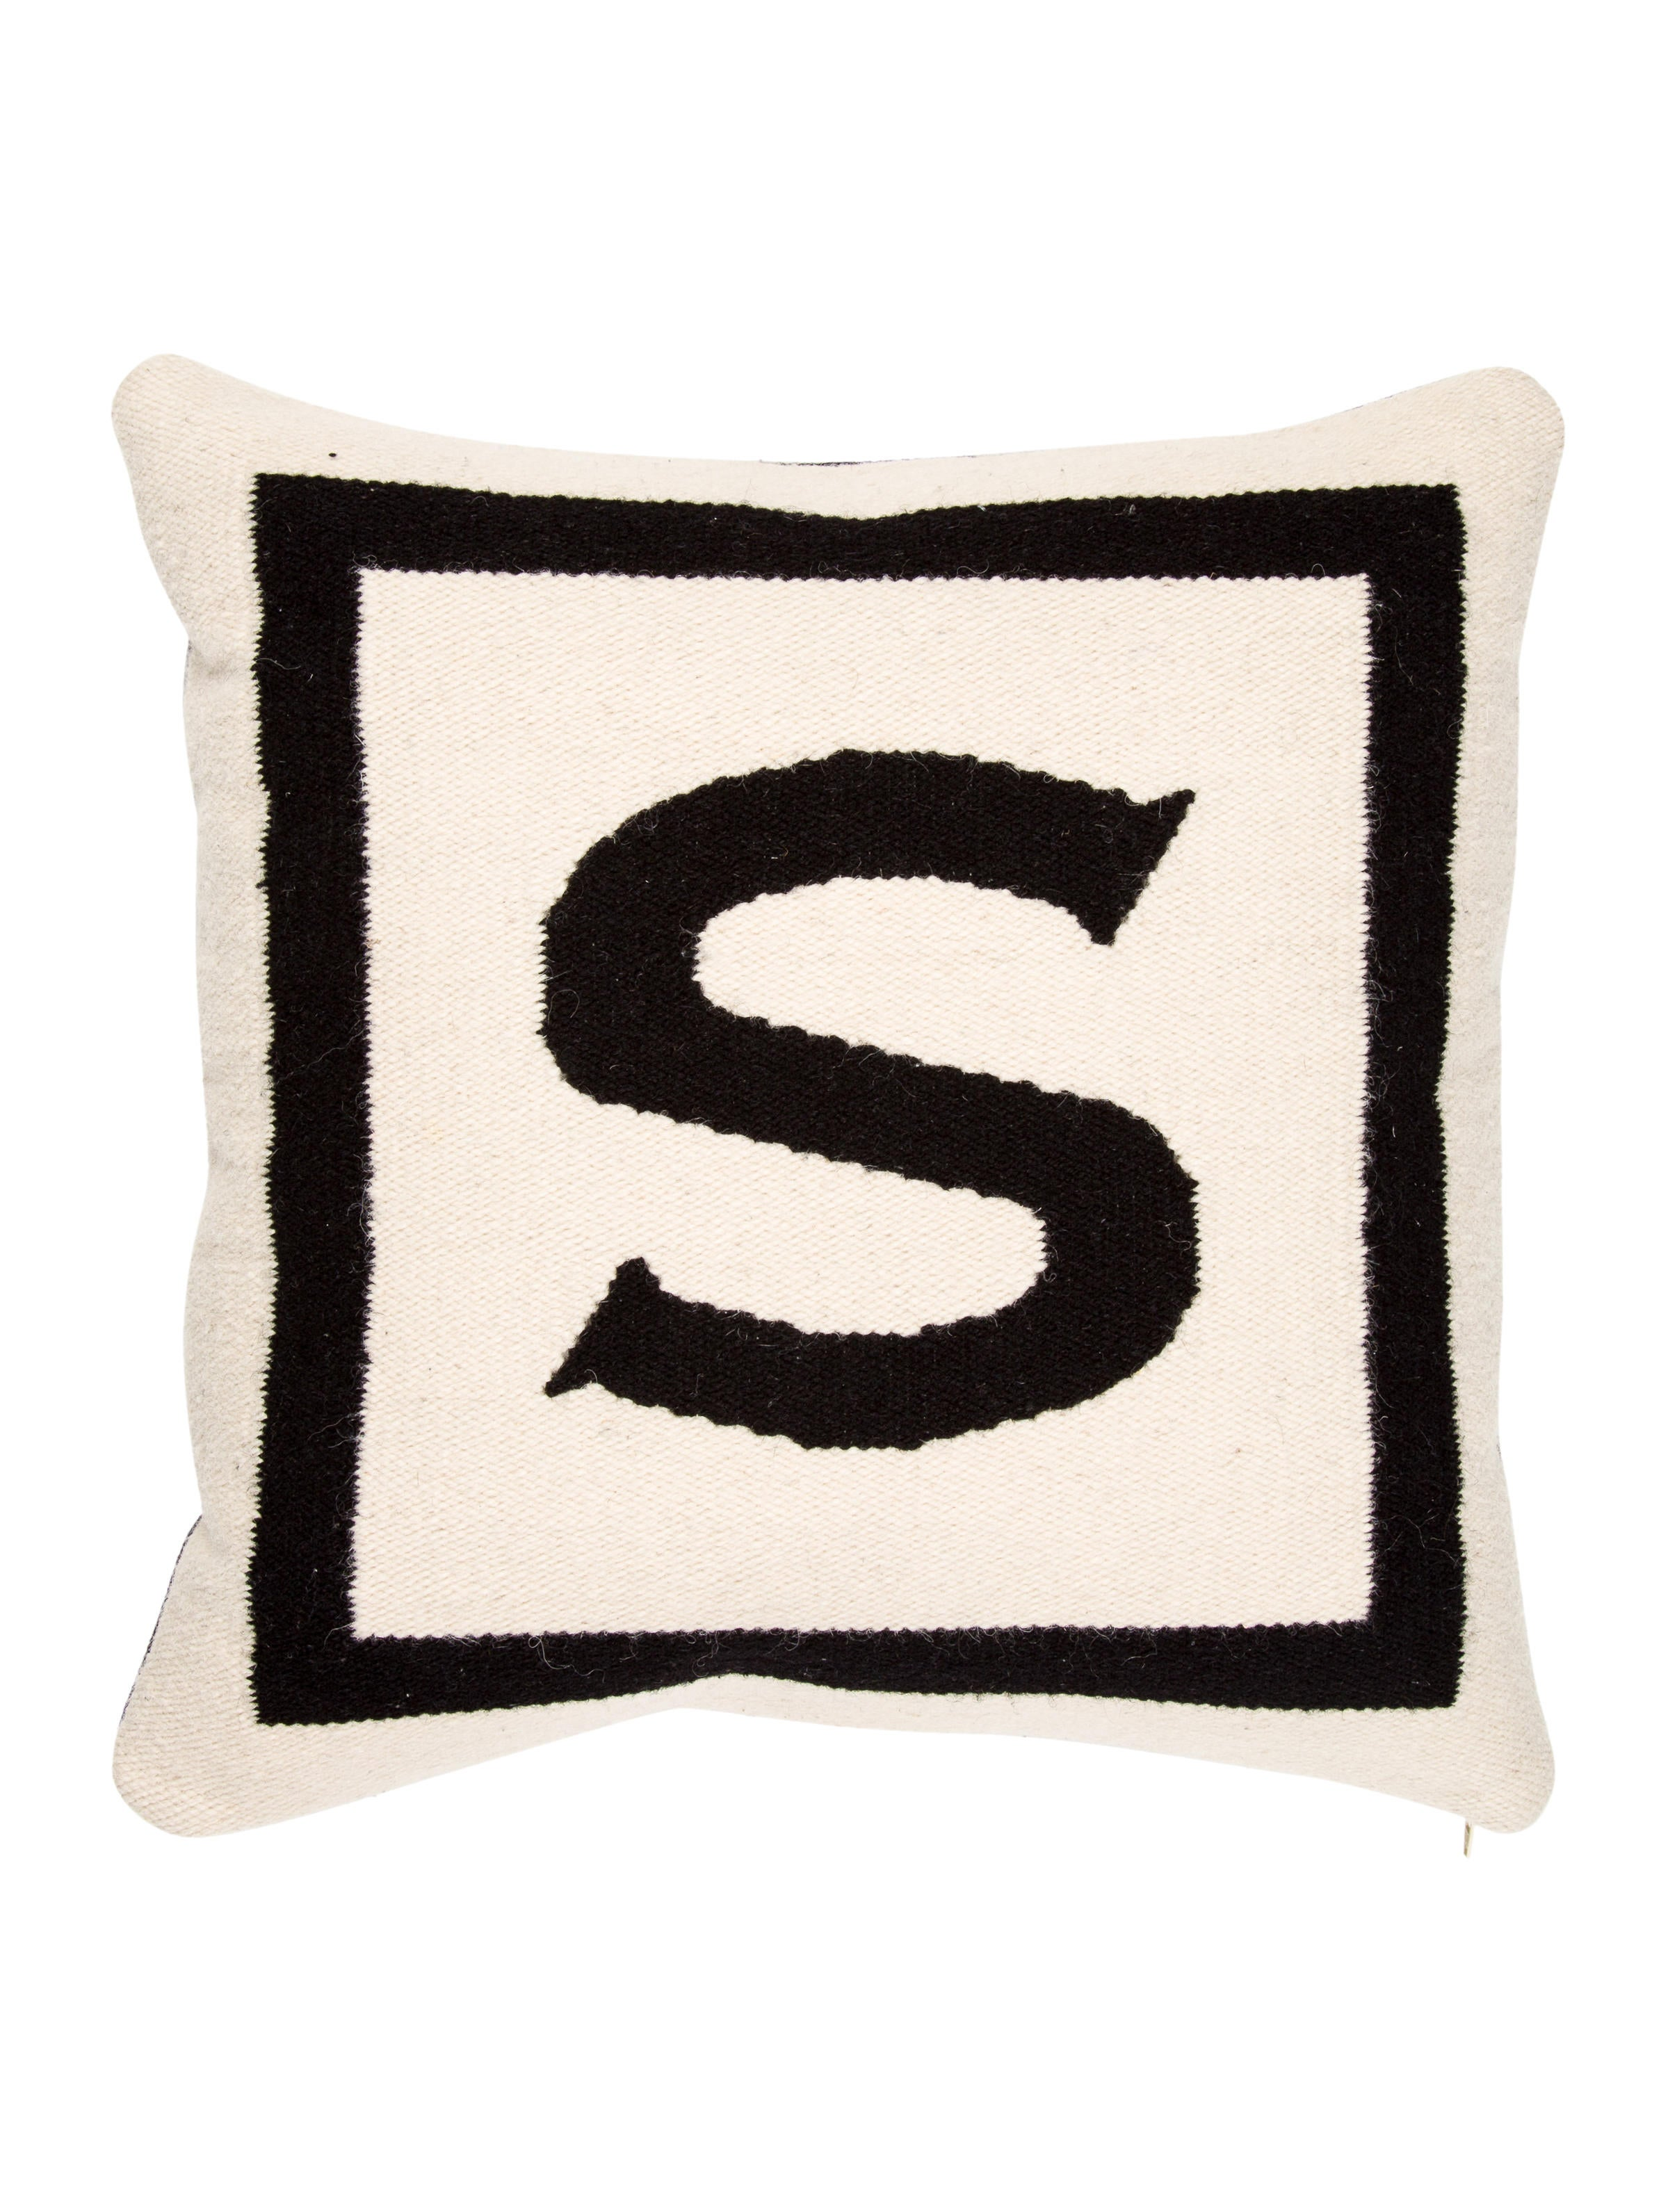 Throw Pillows With Letters : Jonathan Adler Letter Throw Pillow - Pillows And Throws - JTADL20455 The RealReal